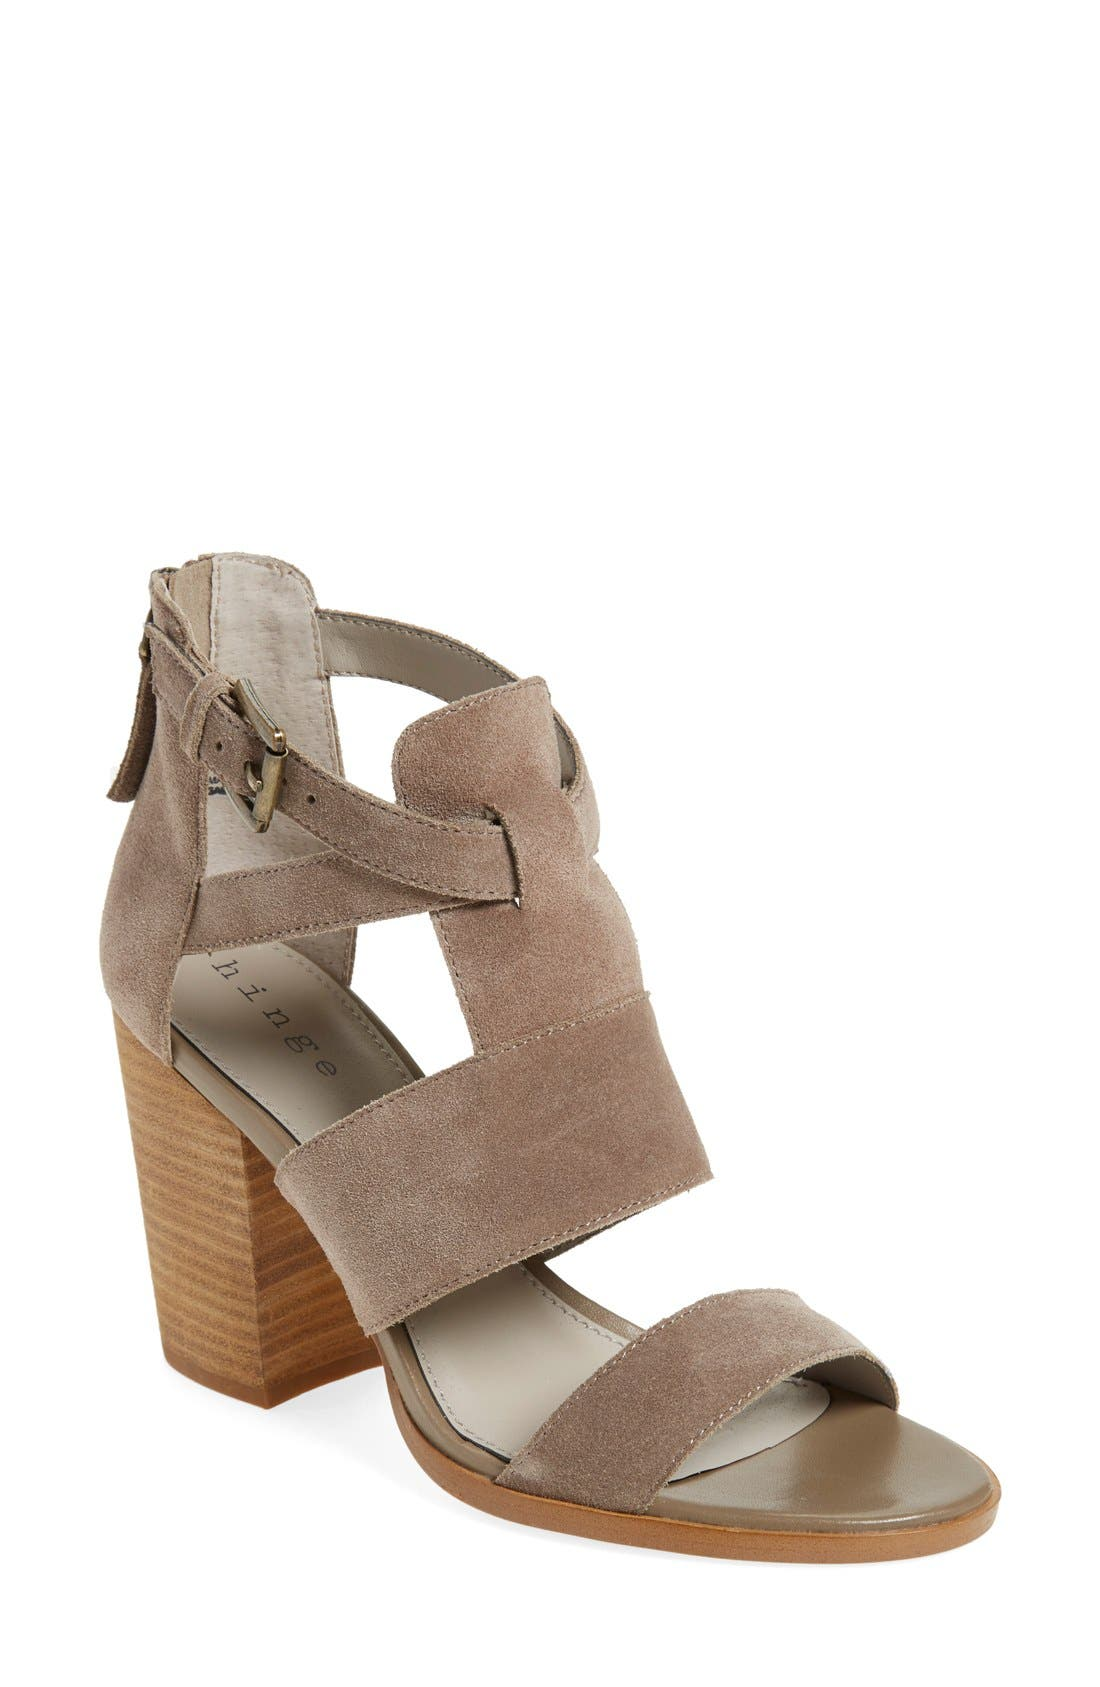 'Cora' Block Heel Sandal,                         Main,                         color, Taupe Suede